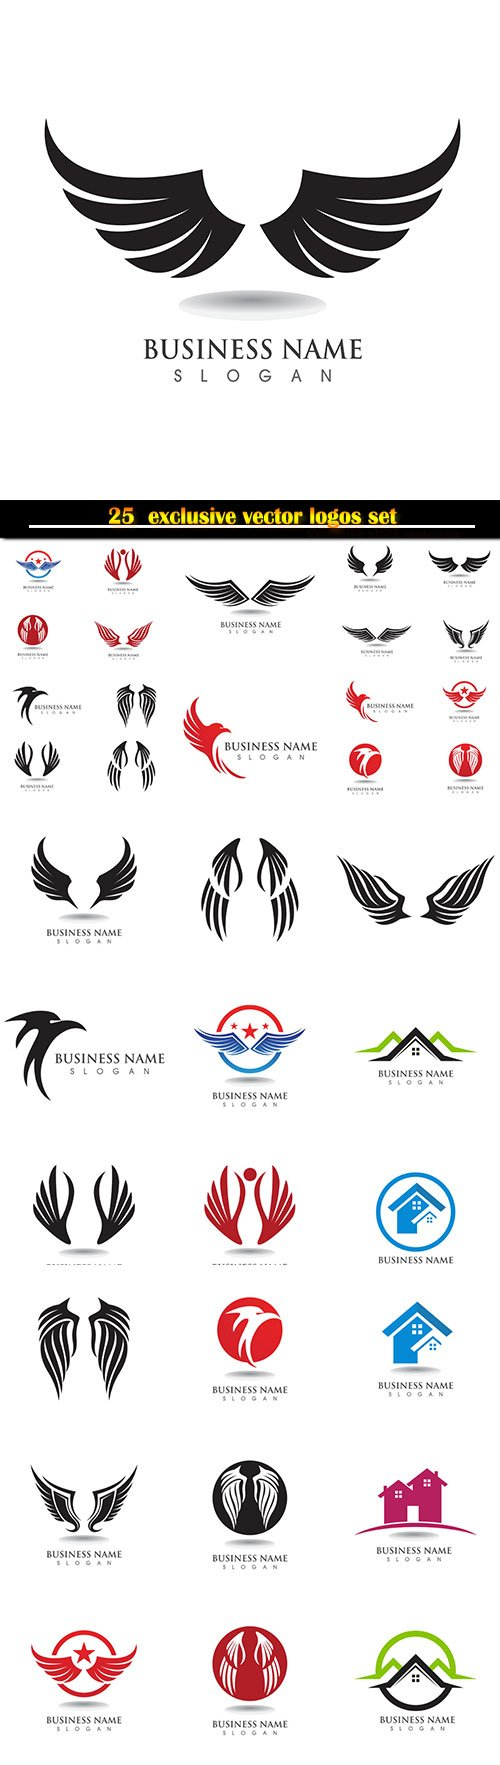 Logo business vector illustration template # 124